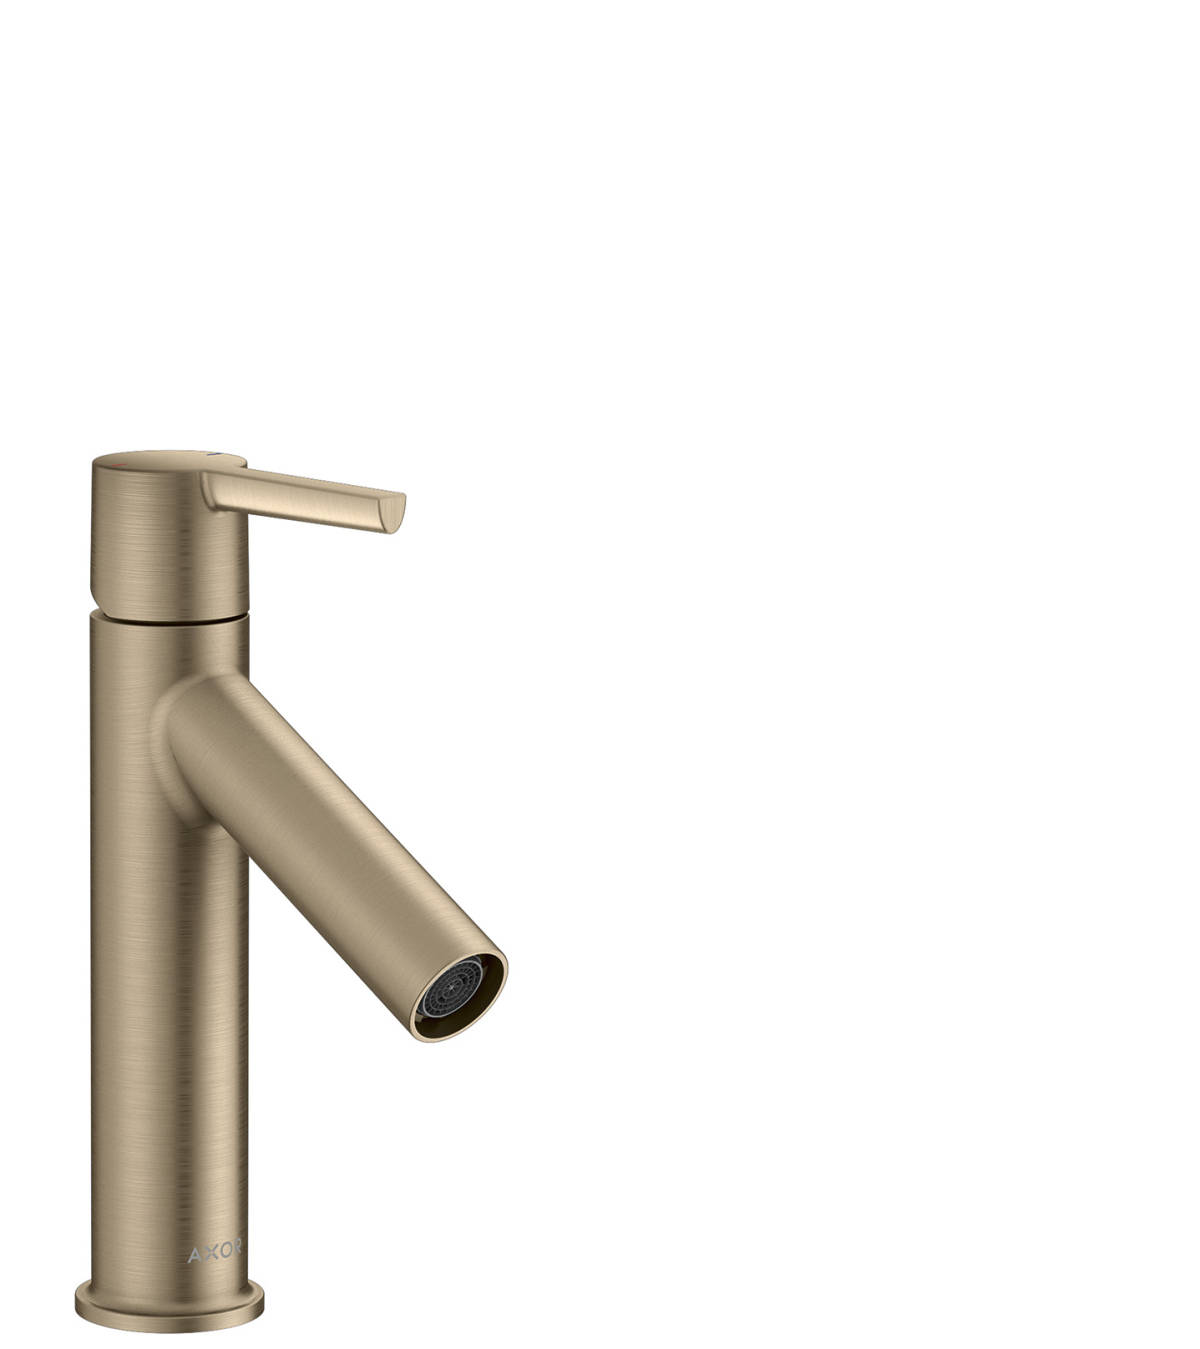 Single lever basin mixer 100 with lever handle and waste set, Brushed Nickel, 10003820